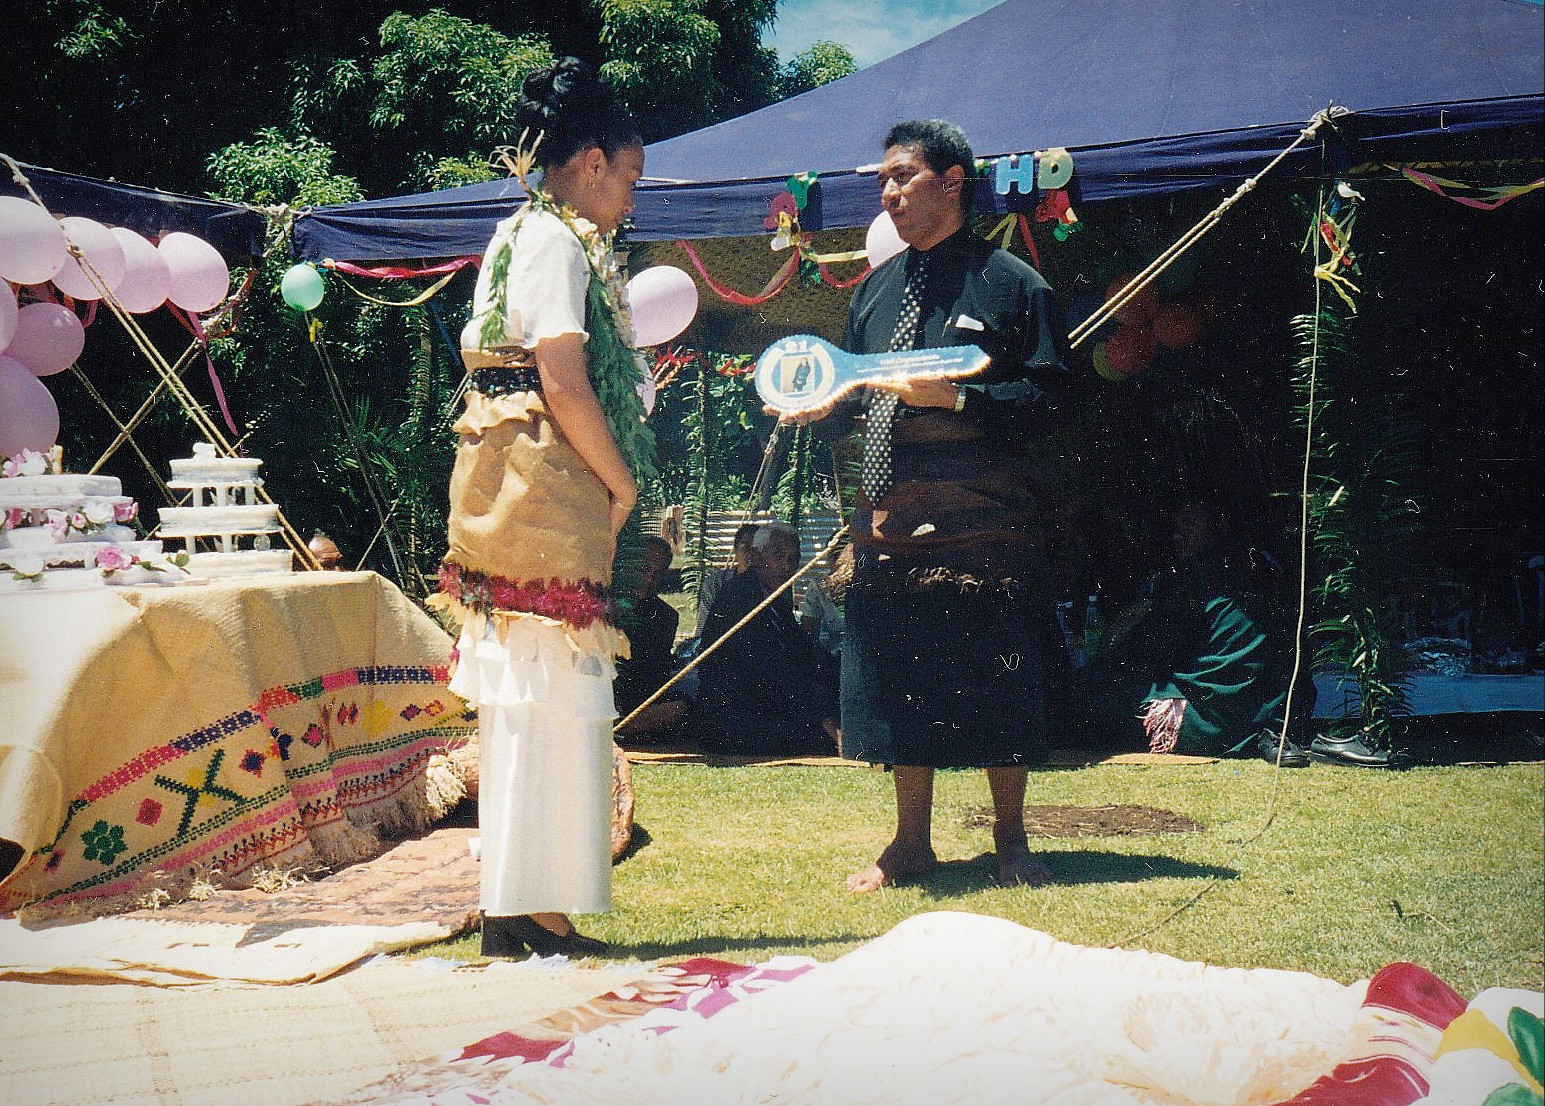 At this Tongan feast, the father gifts his daughter a symbolic key